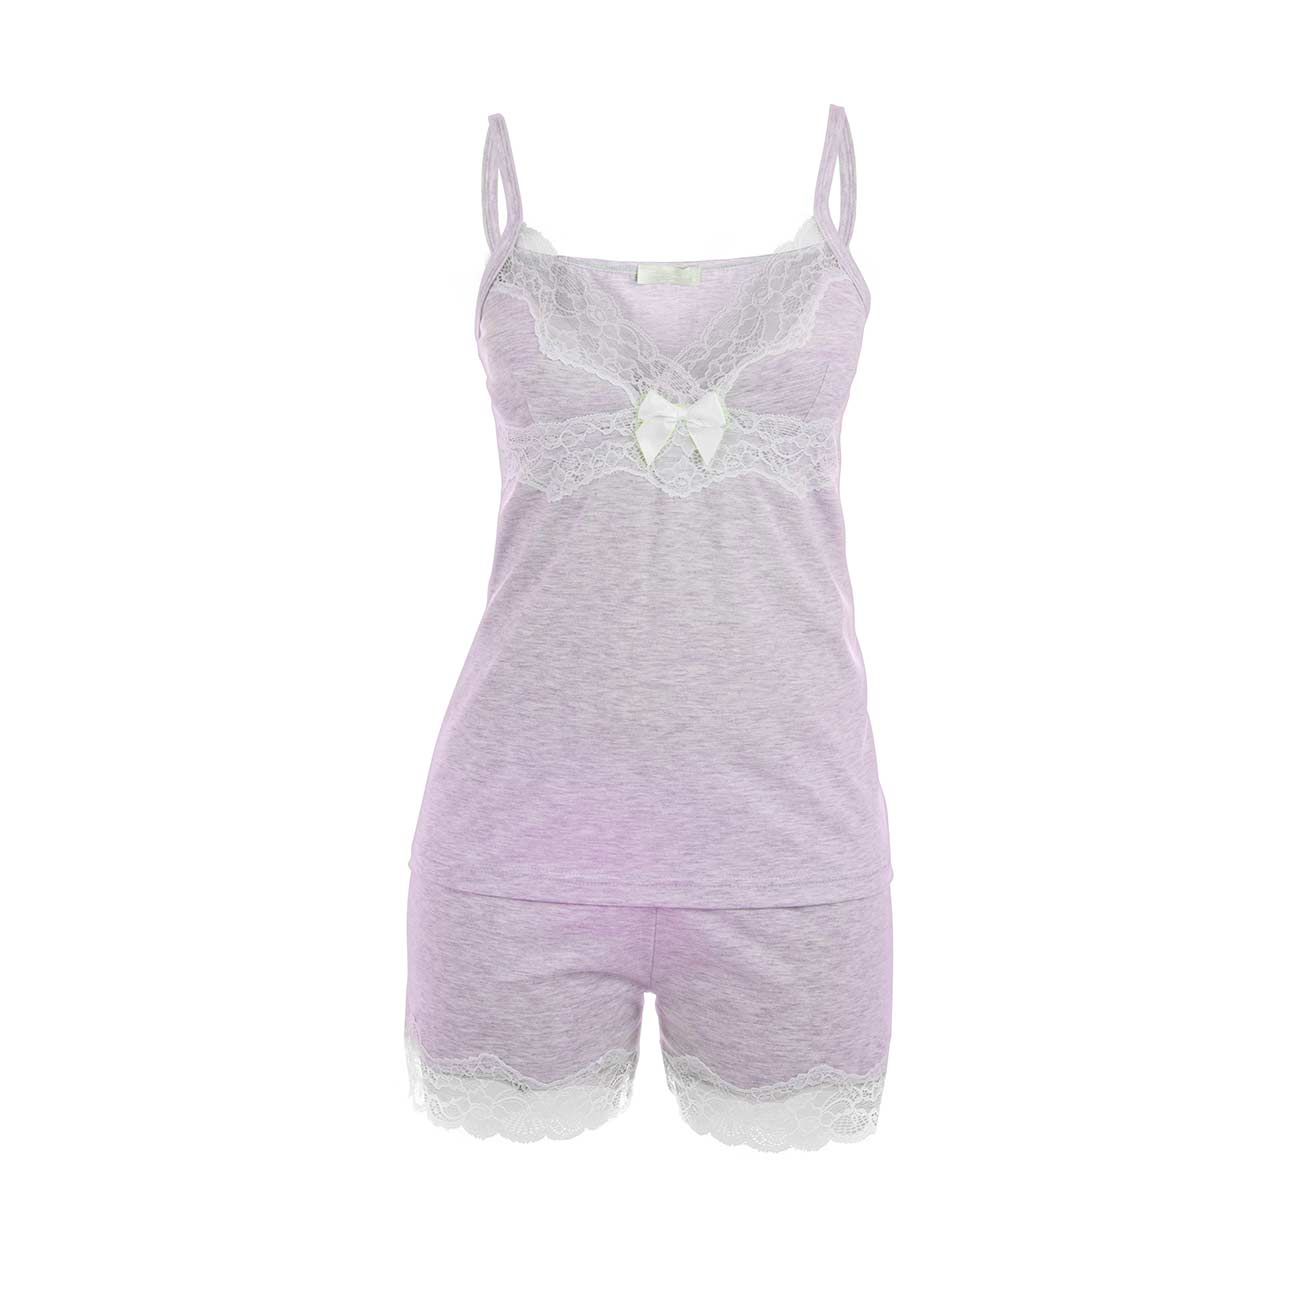 Baby Doll Pink Label - 389 Γκρι